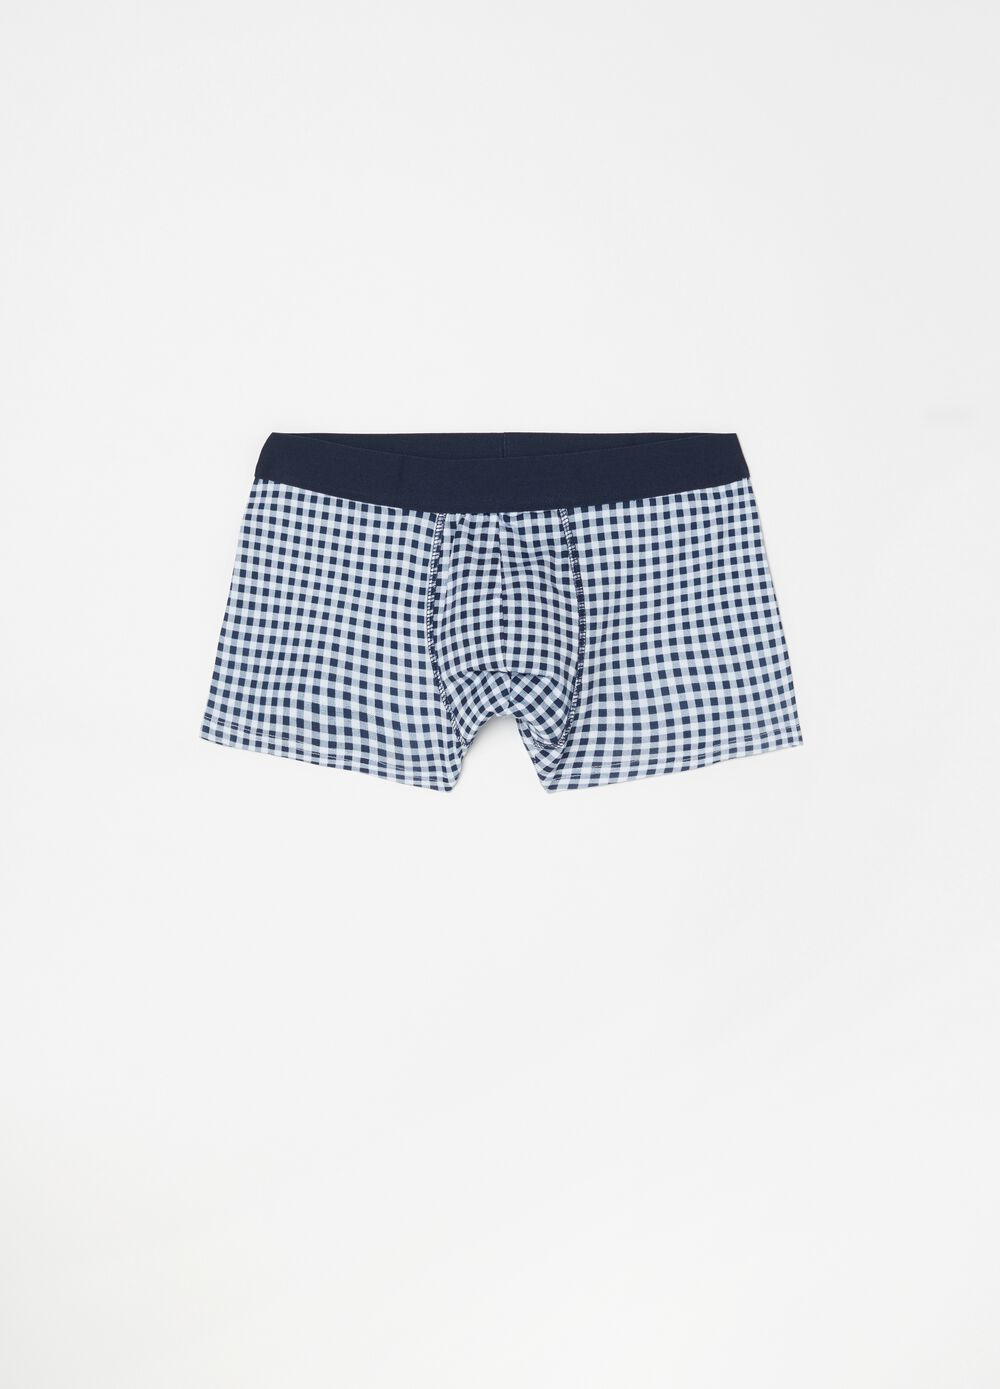 Five-pack patterned boxer shorts in 100% cotton